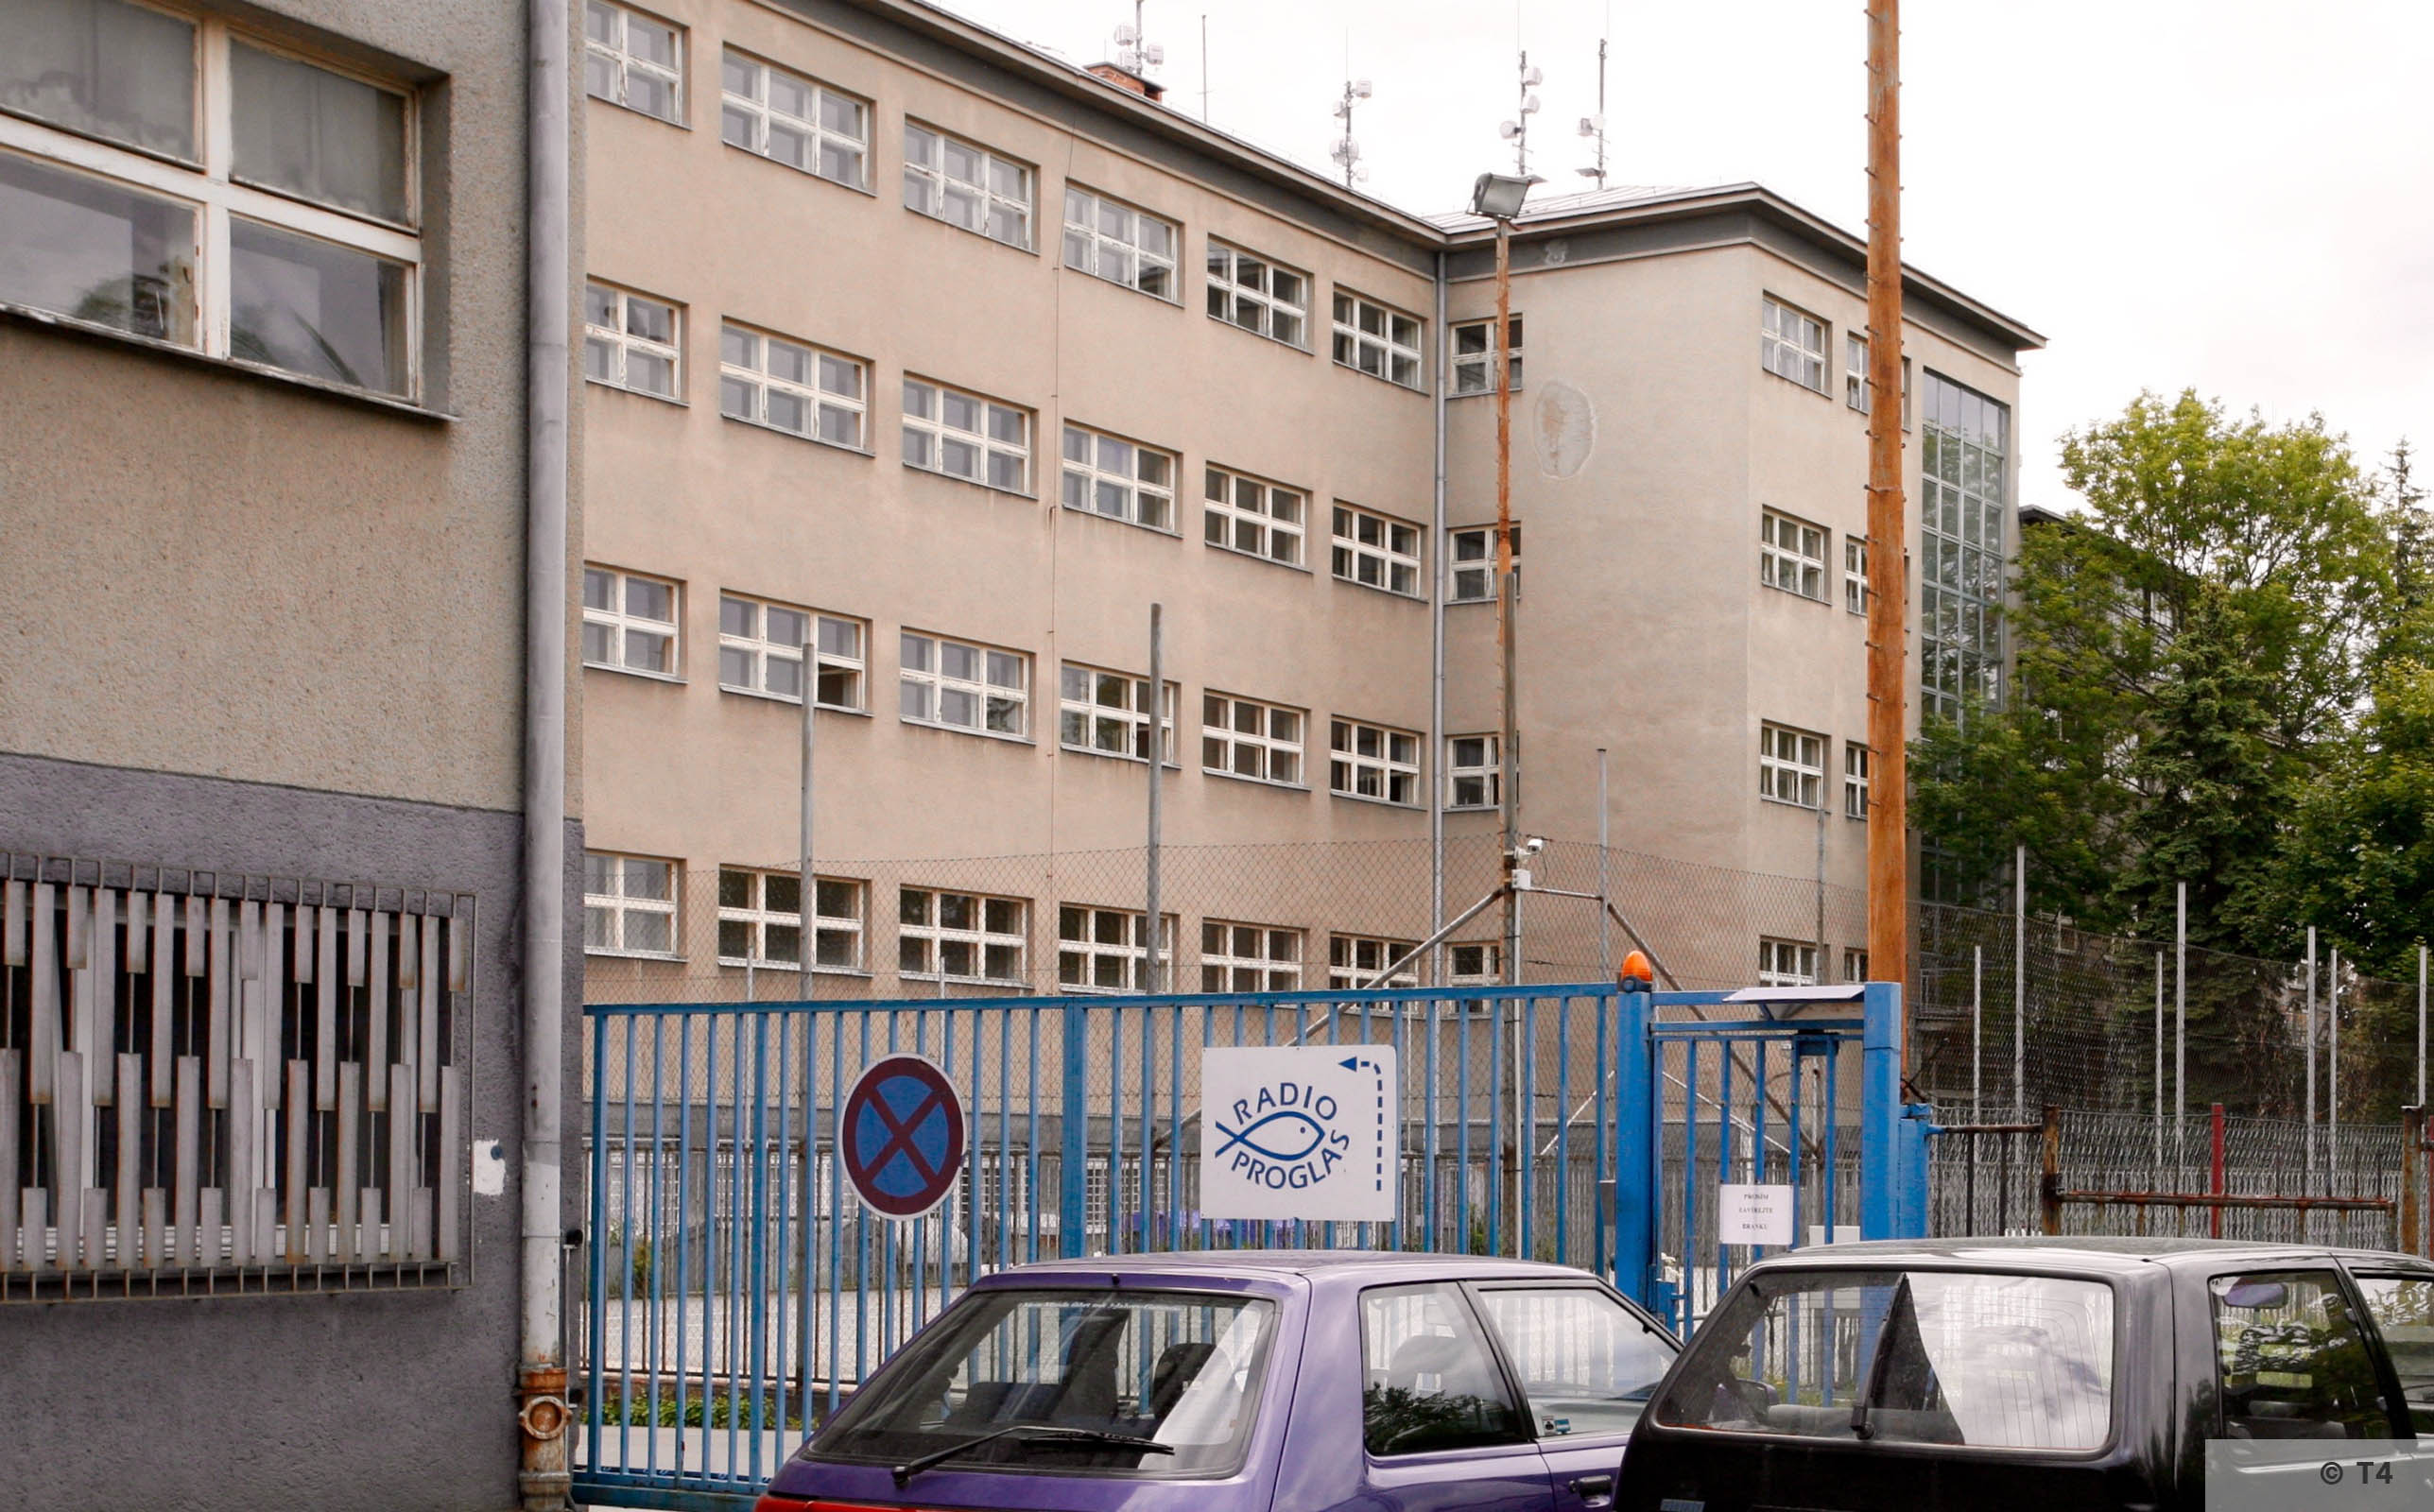 Former SS Technical Academy now a radio station. 2006 T4 5785